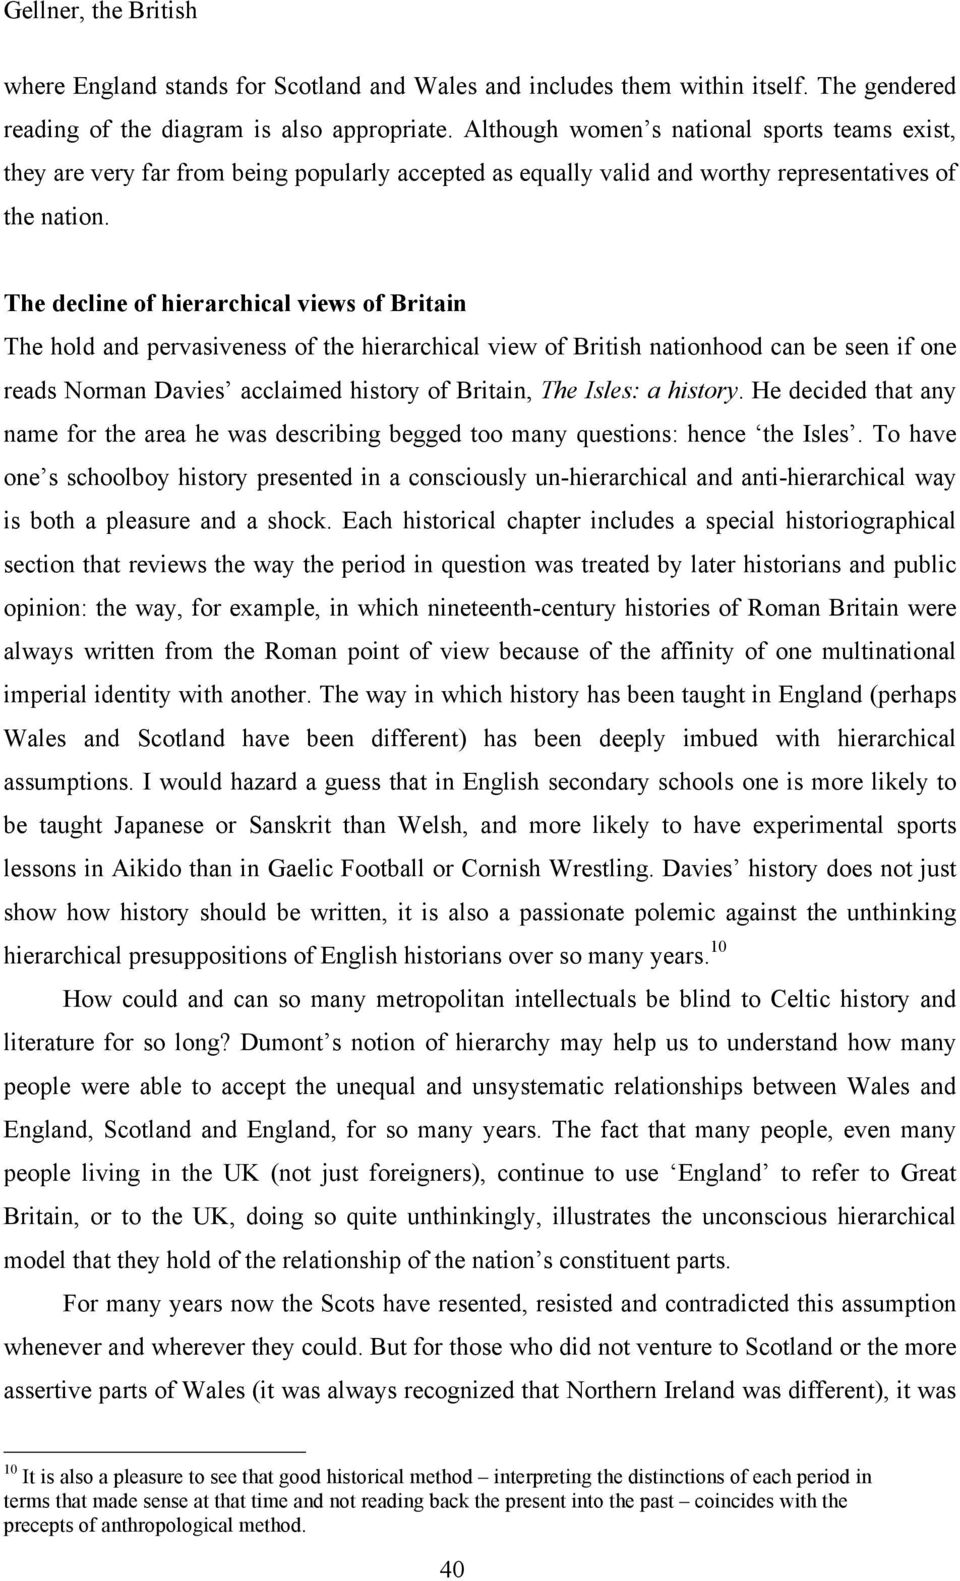 The decline of hierarchical views of Britain The hold and pervasiveness of the hierarchical view of British nationhood can be seen if one reads Norman Davies acclaimed history of Britain, The Isles: